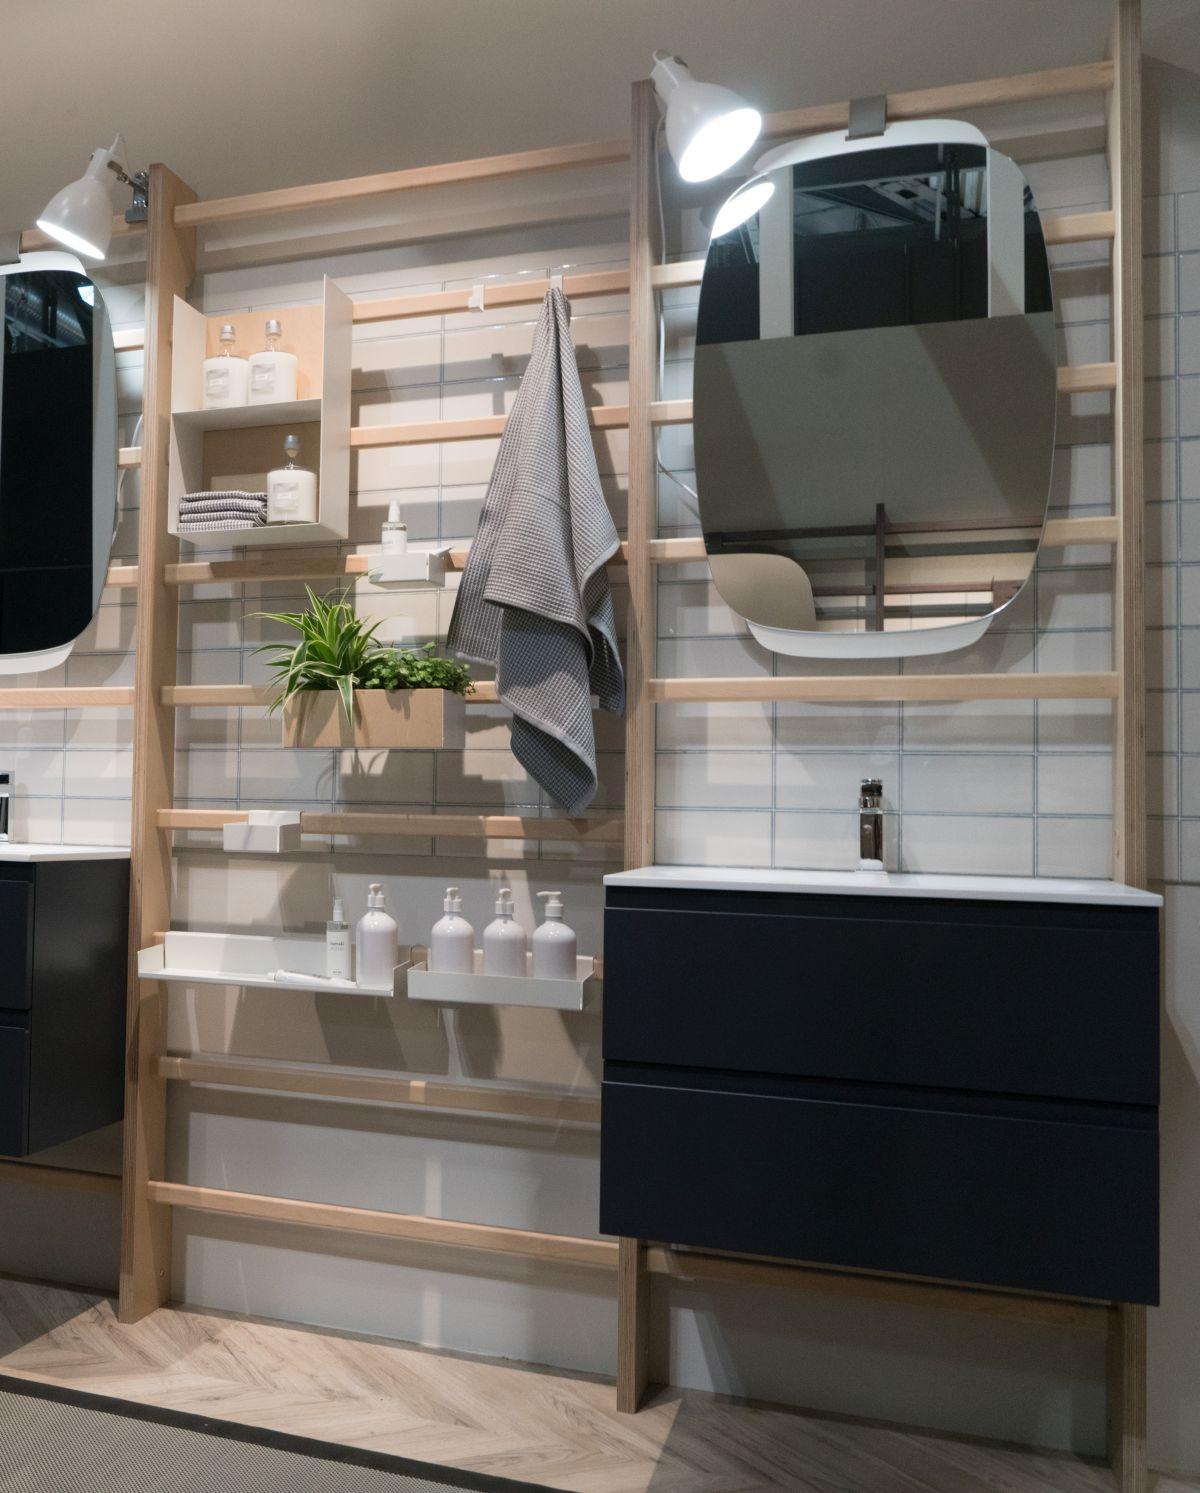 Various different accessories such as light fixtures, storage shelves, towel racks and mirrors can be mixed and matched as desired